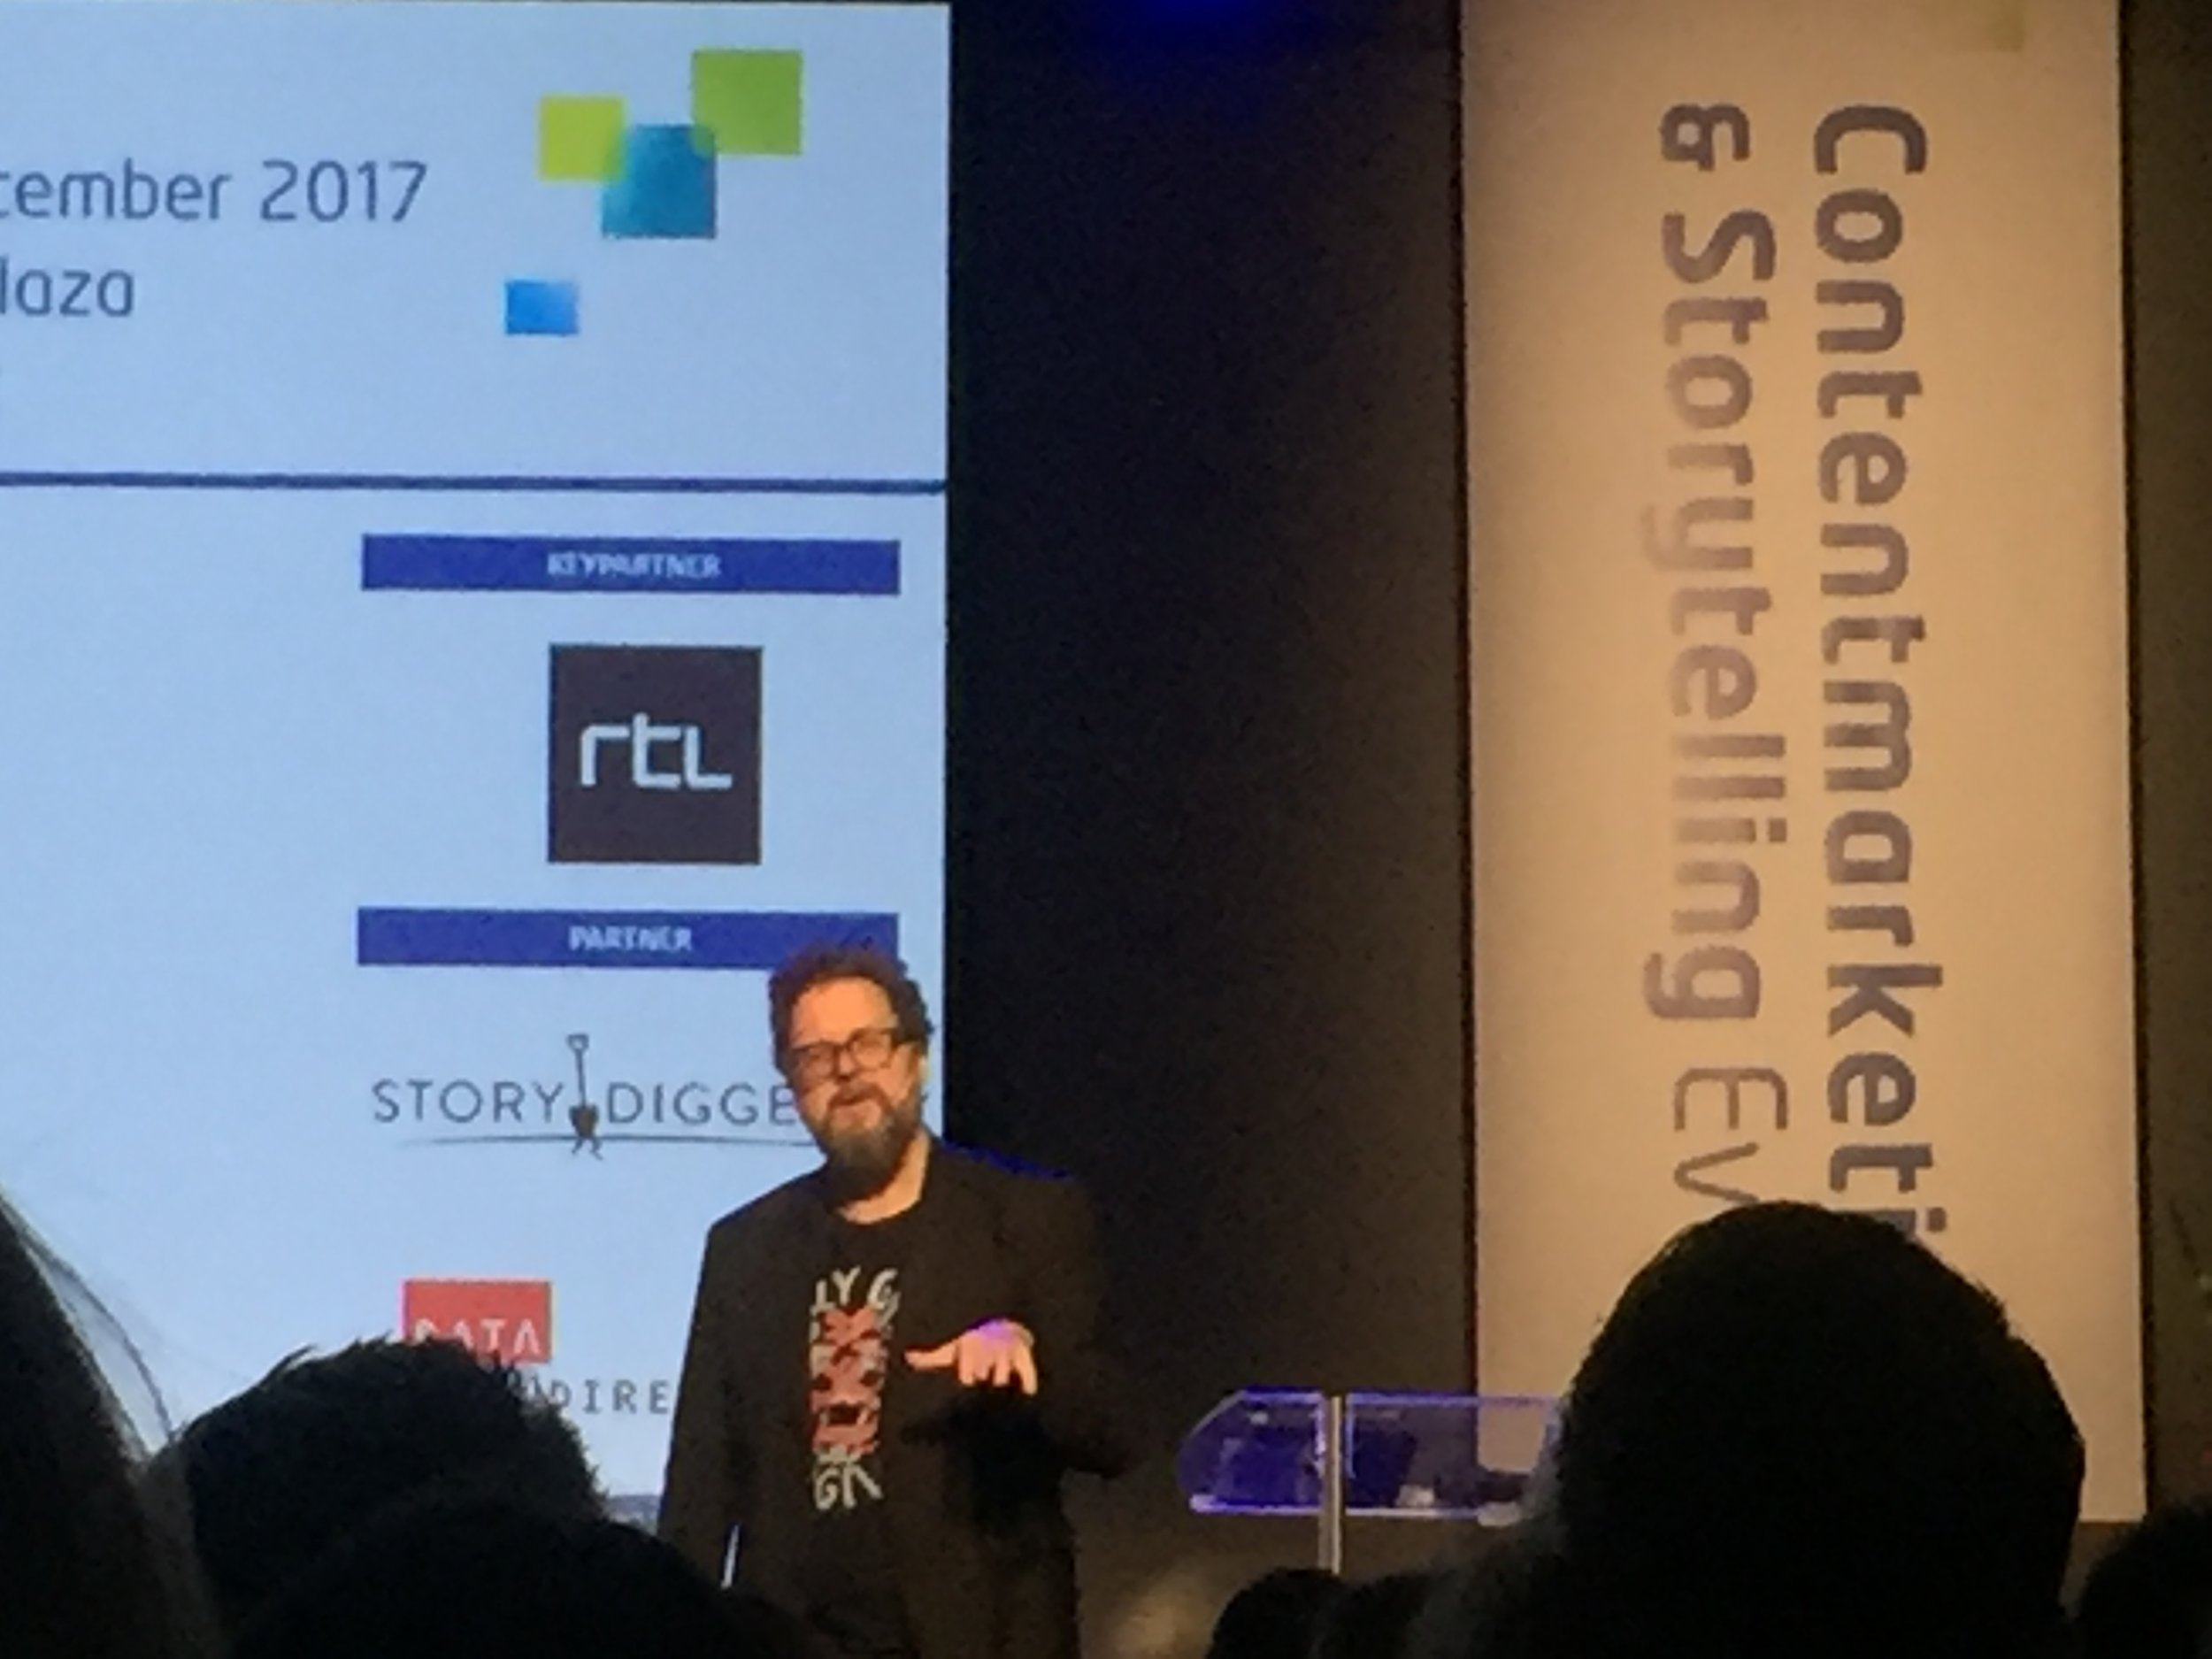 Regisseur Martin Koolhoven op het Content Marketing en Storytelling Event